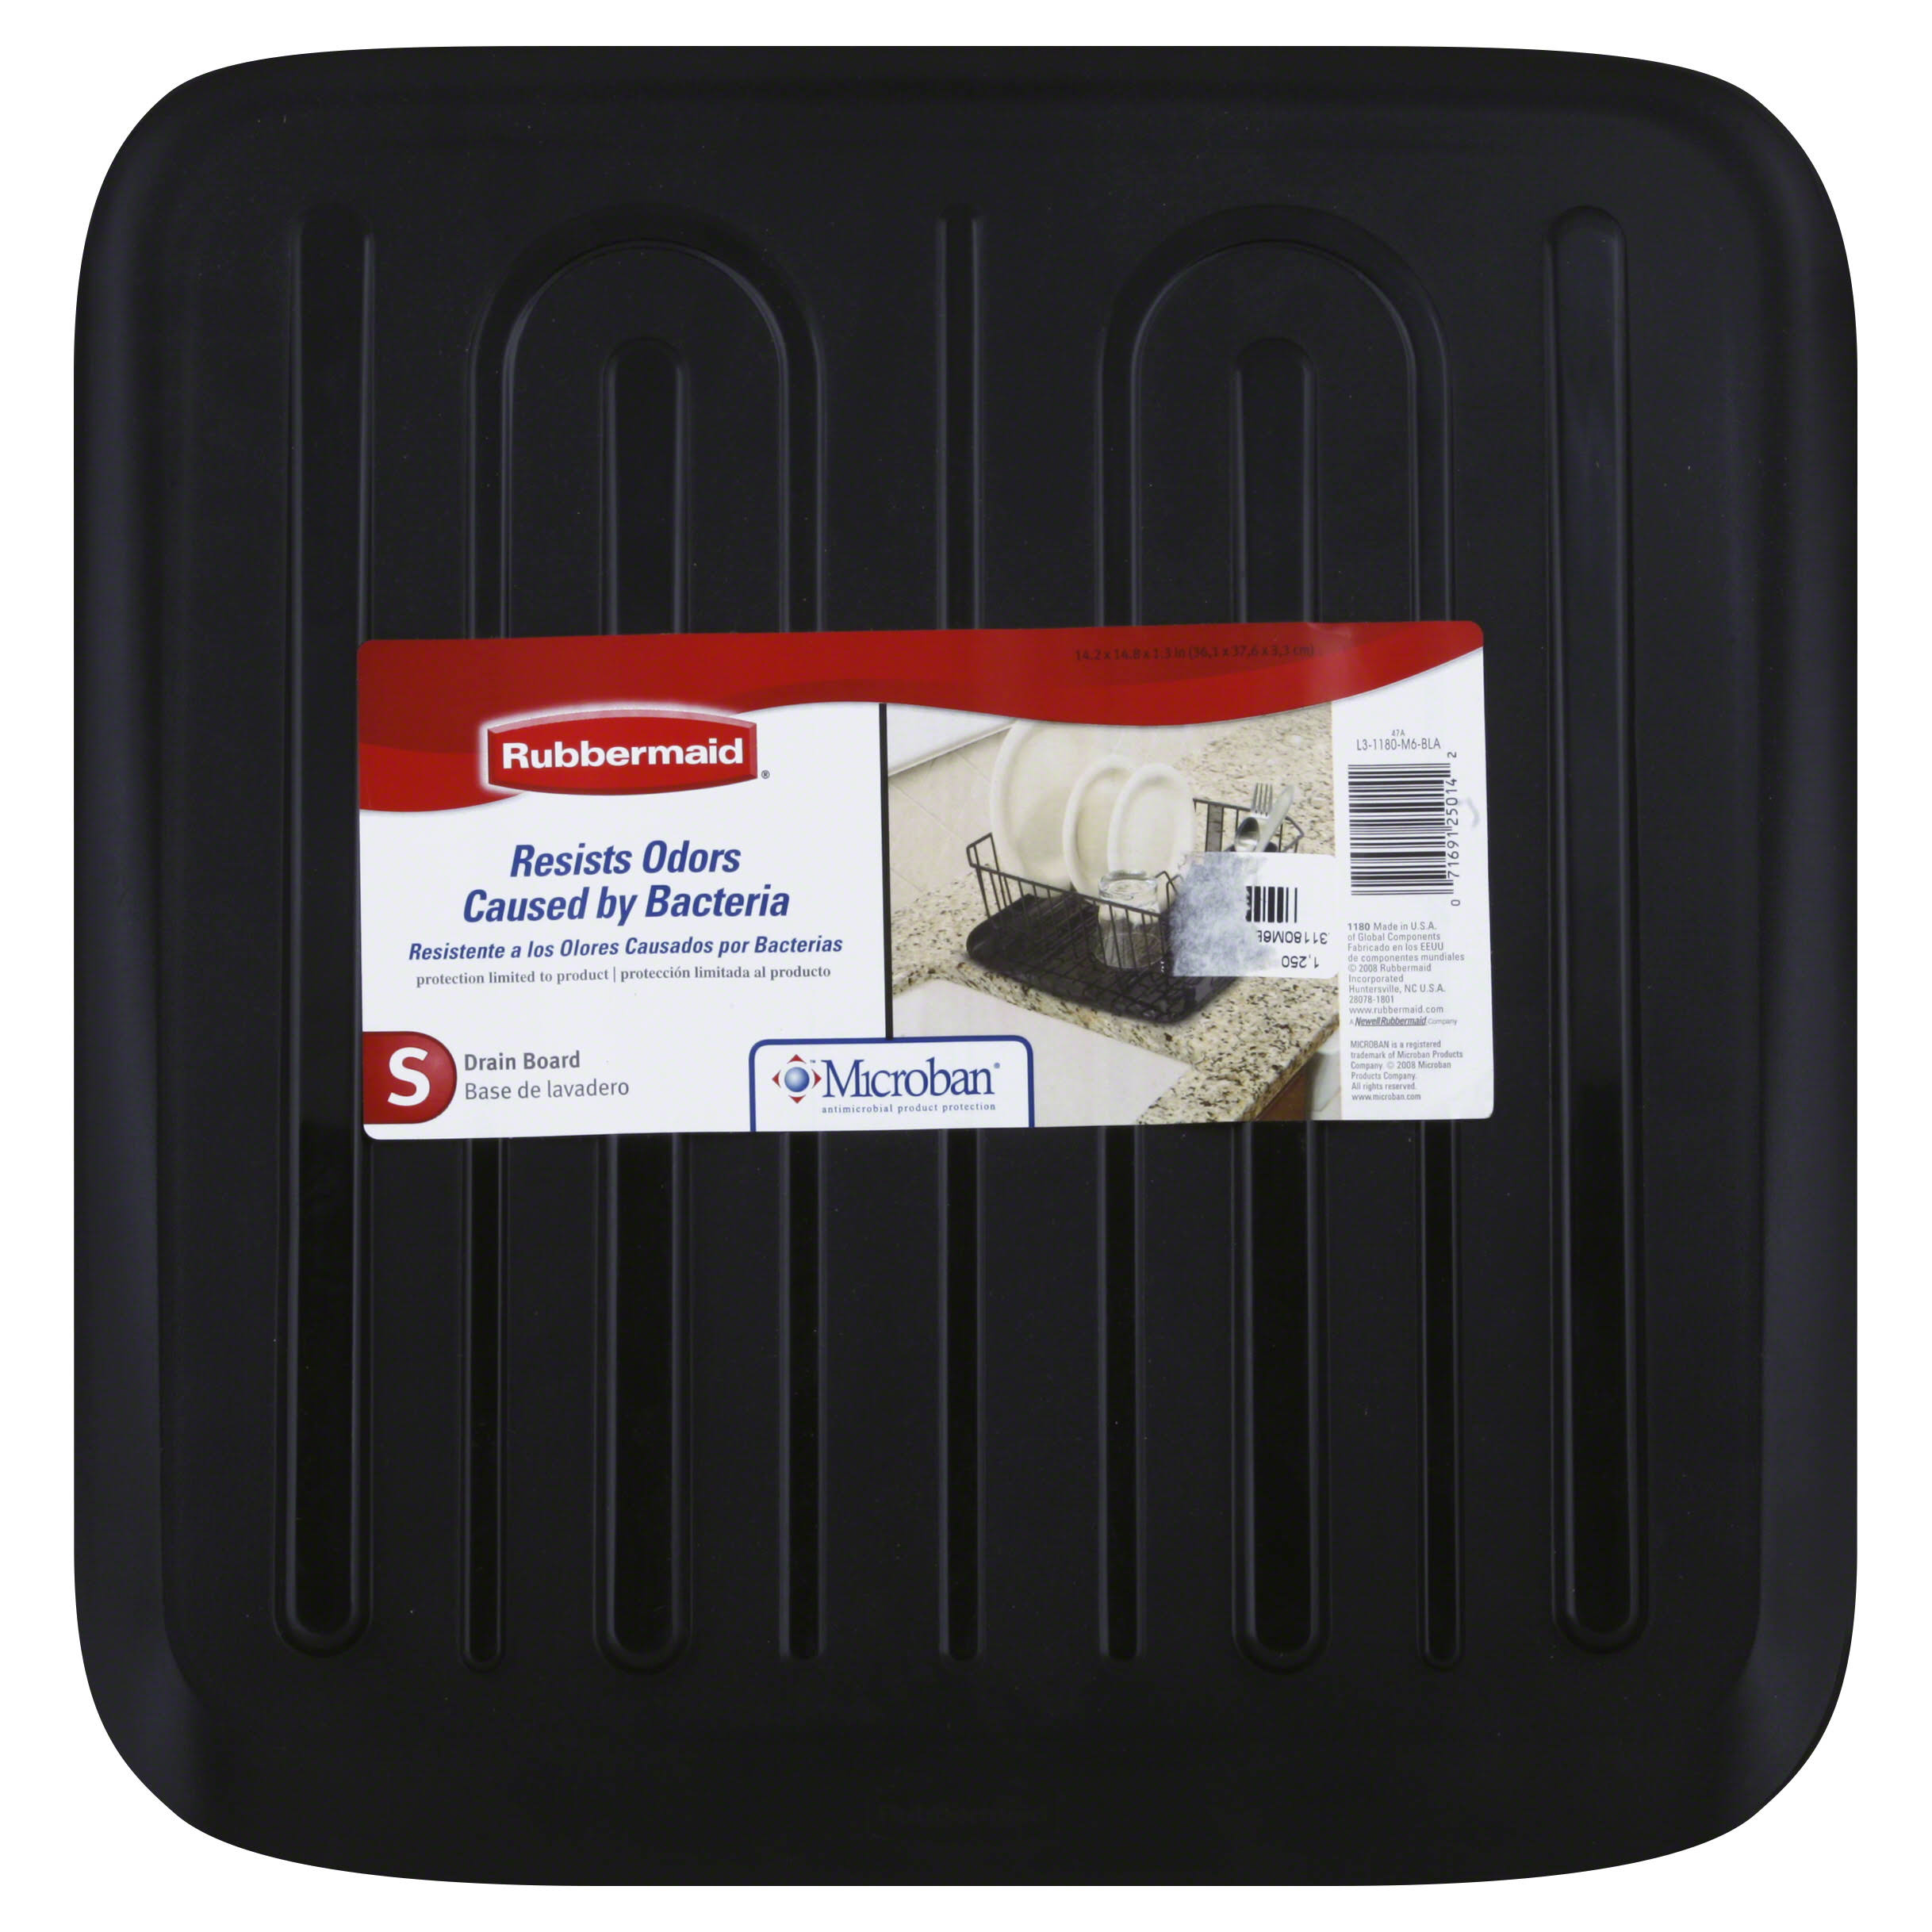 Rubbermaid Drainer Tray - Black, Small